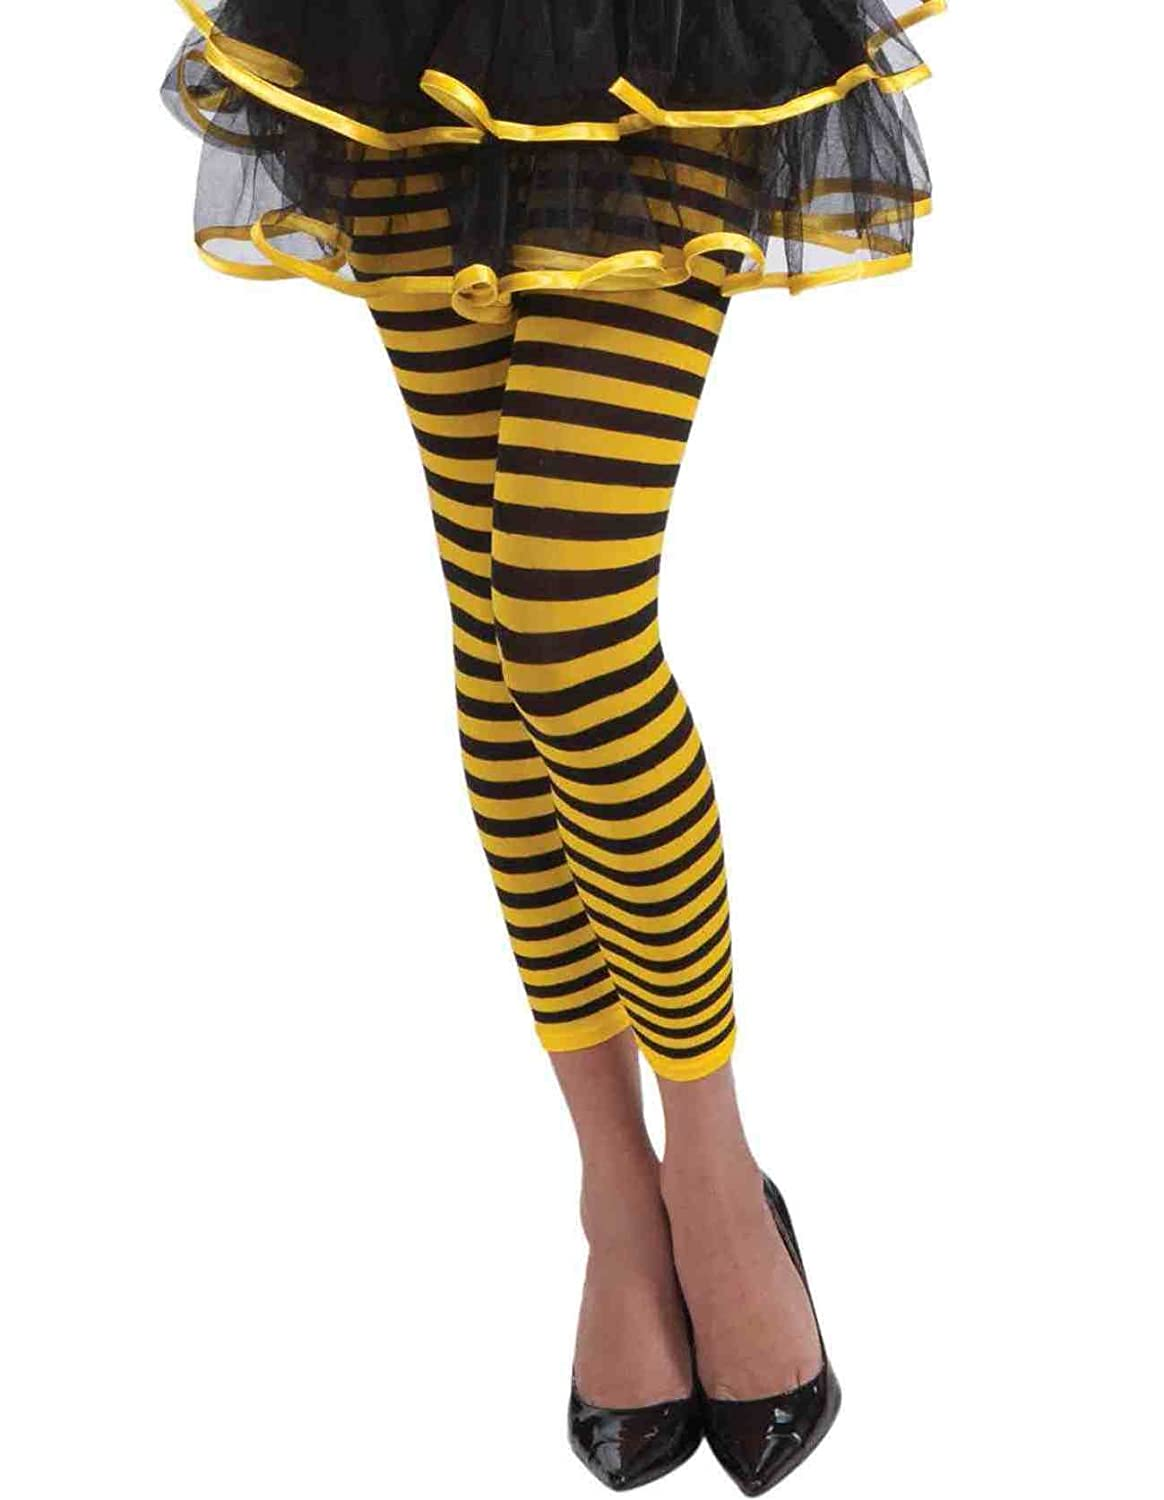 Forum Novelties Women's Novelty Bumble Bee Leggings Multicolored 66732